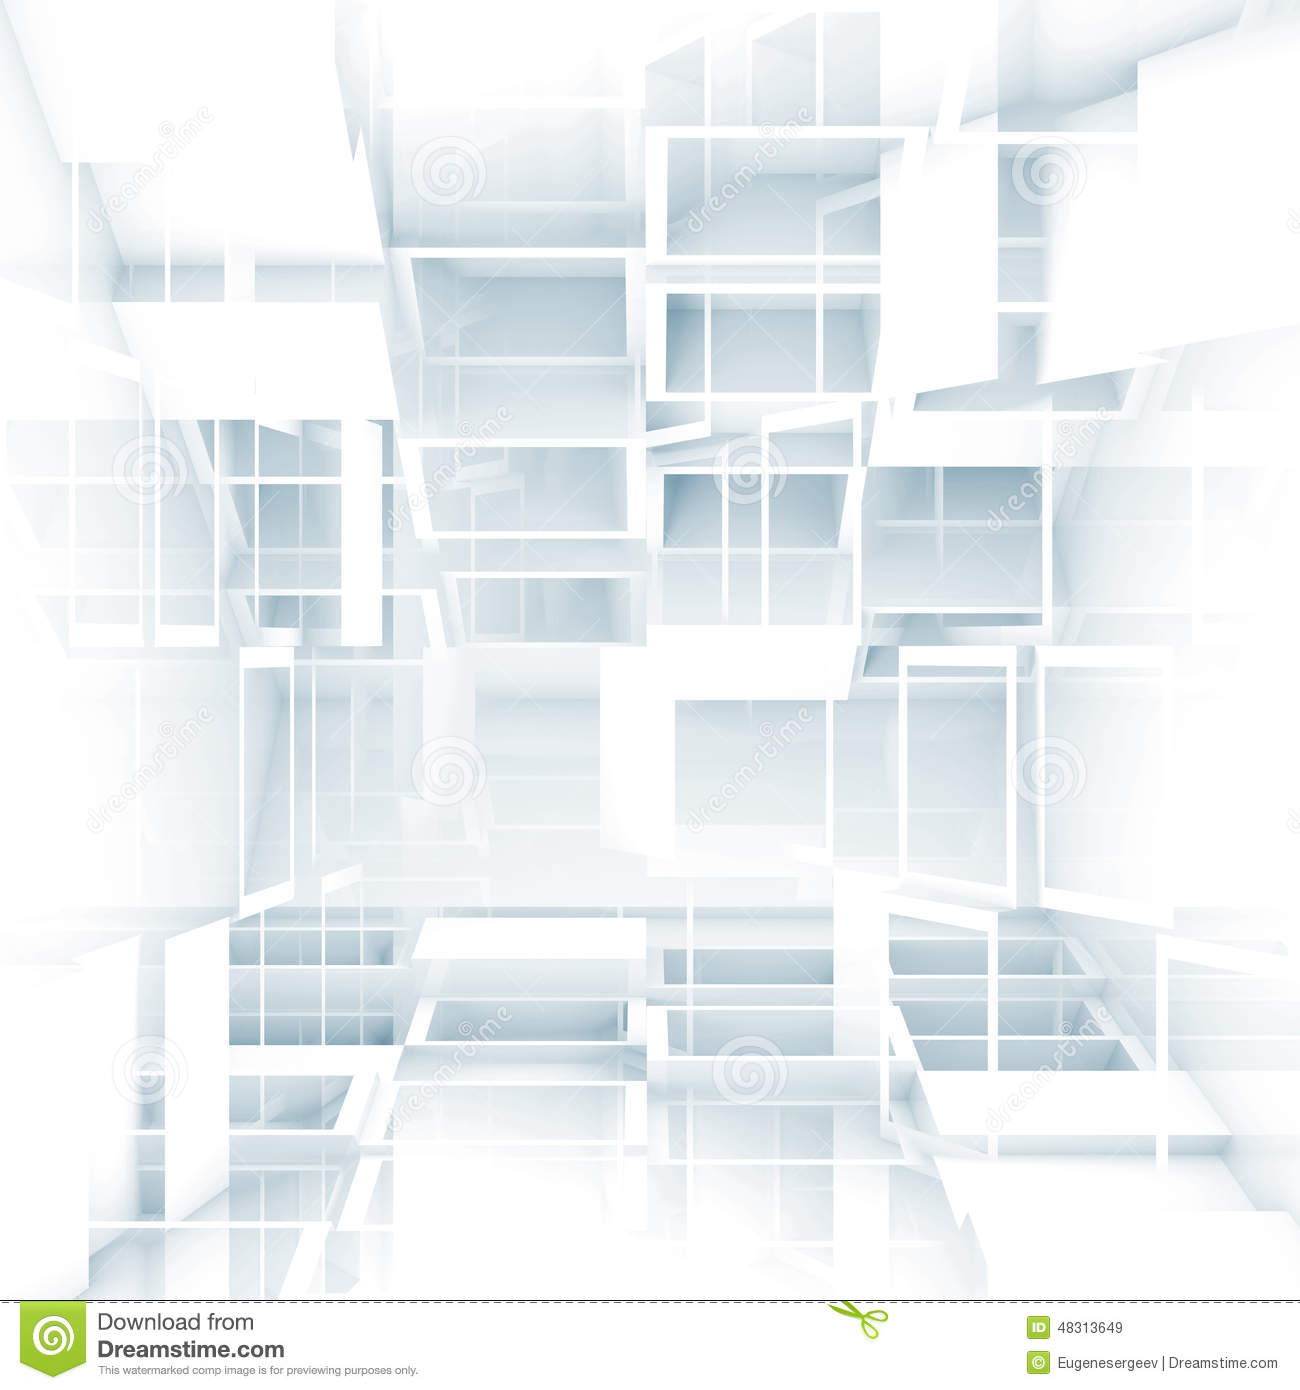 Download Free 3d Wallpapers For Windows 8 Abstract Digital 3d Background With Chaotic White Cubes